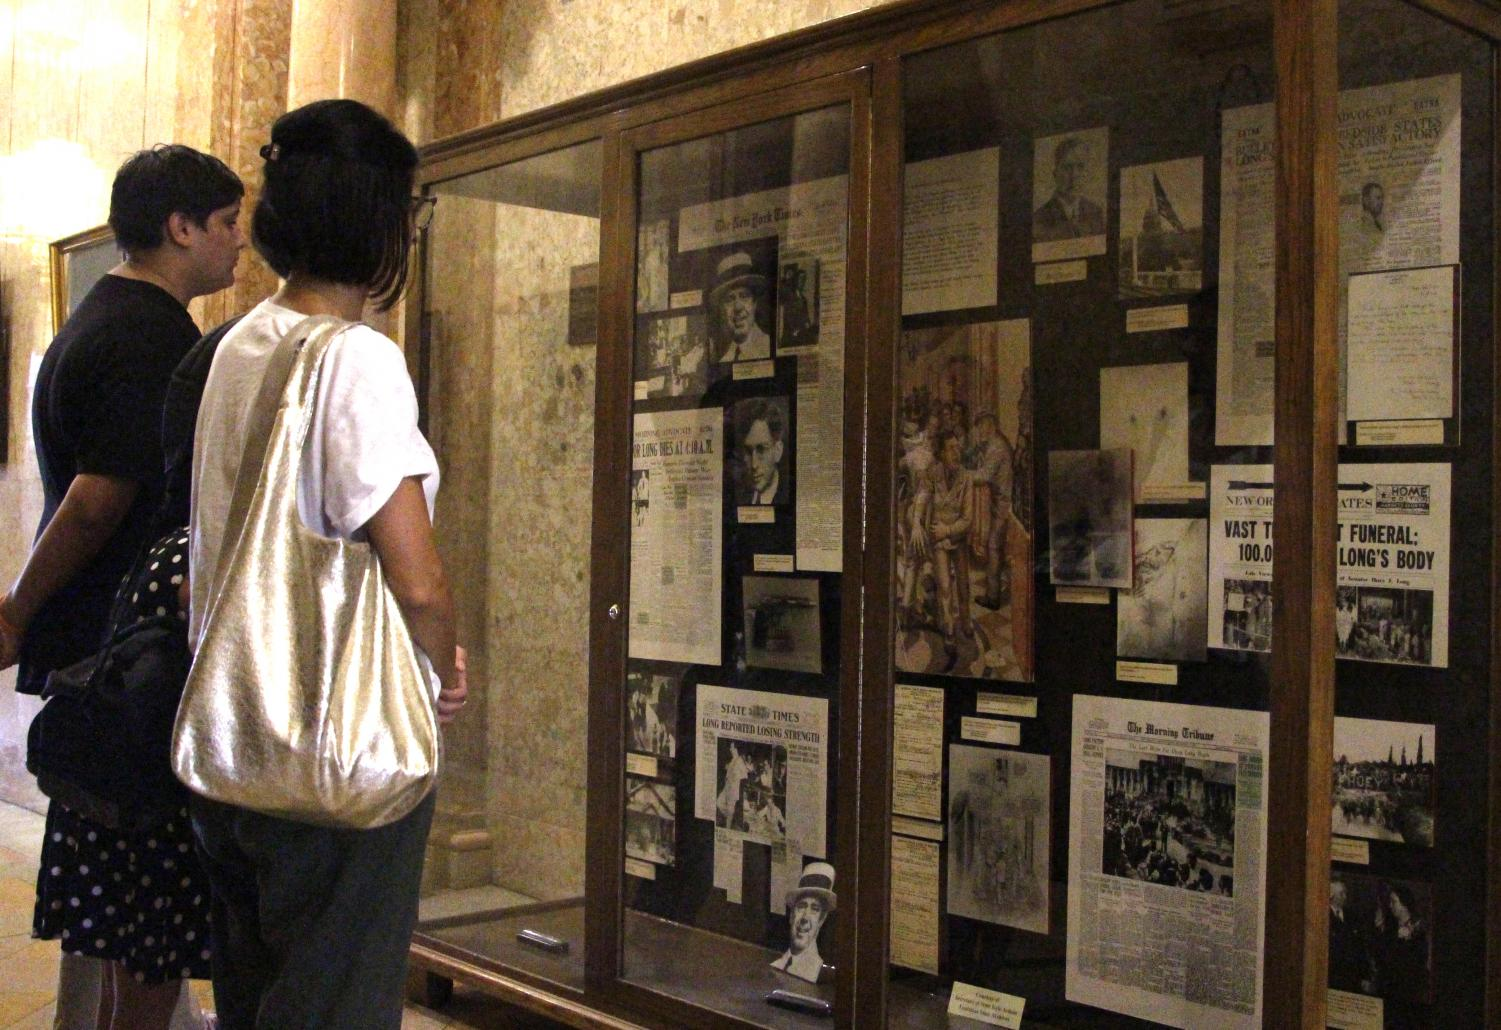 Visitors to the State Capital can view newspaper clippings documenting the assassination of former governor and US Senator Huey Long. Long was killed in the capital building on September 8, 1935 by Dr. Carl Weiss.